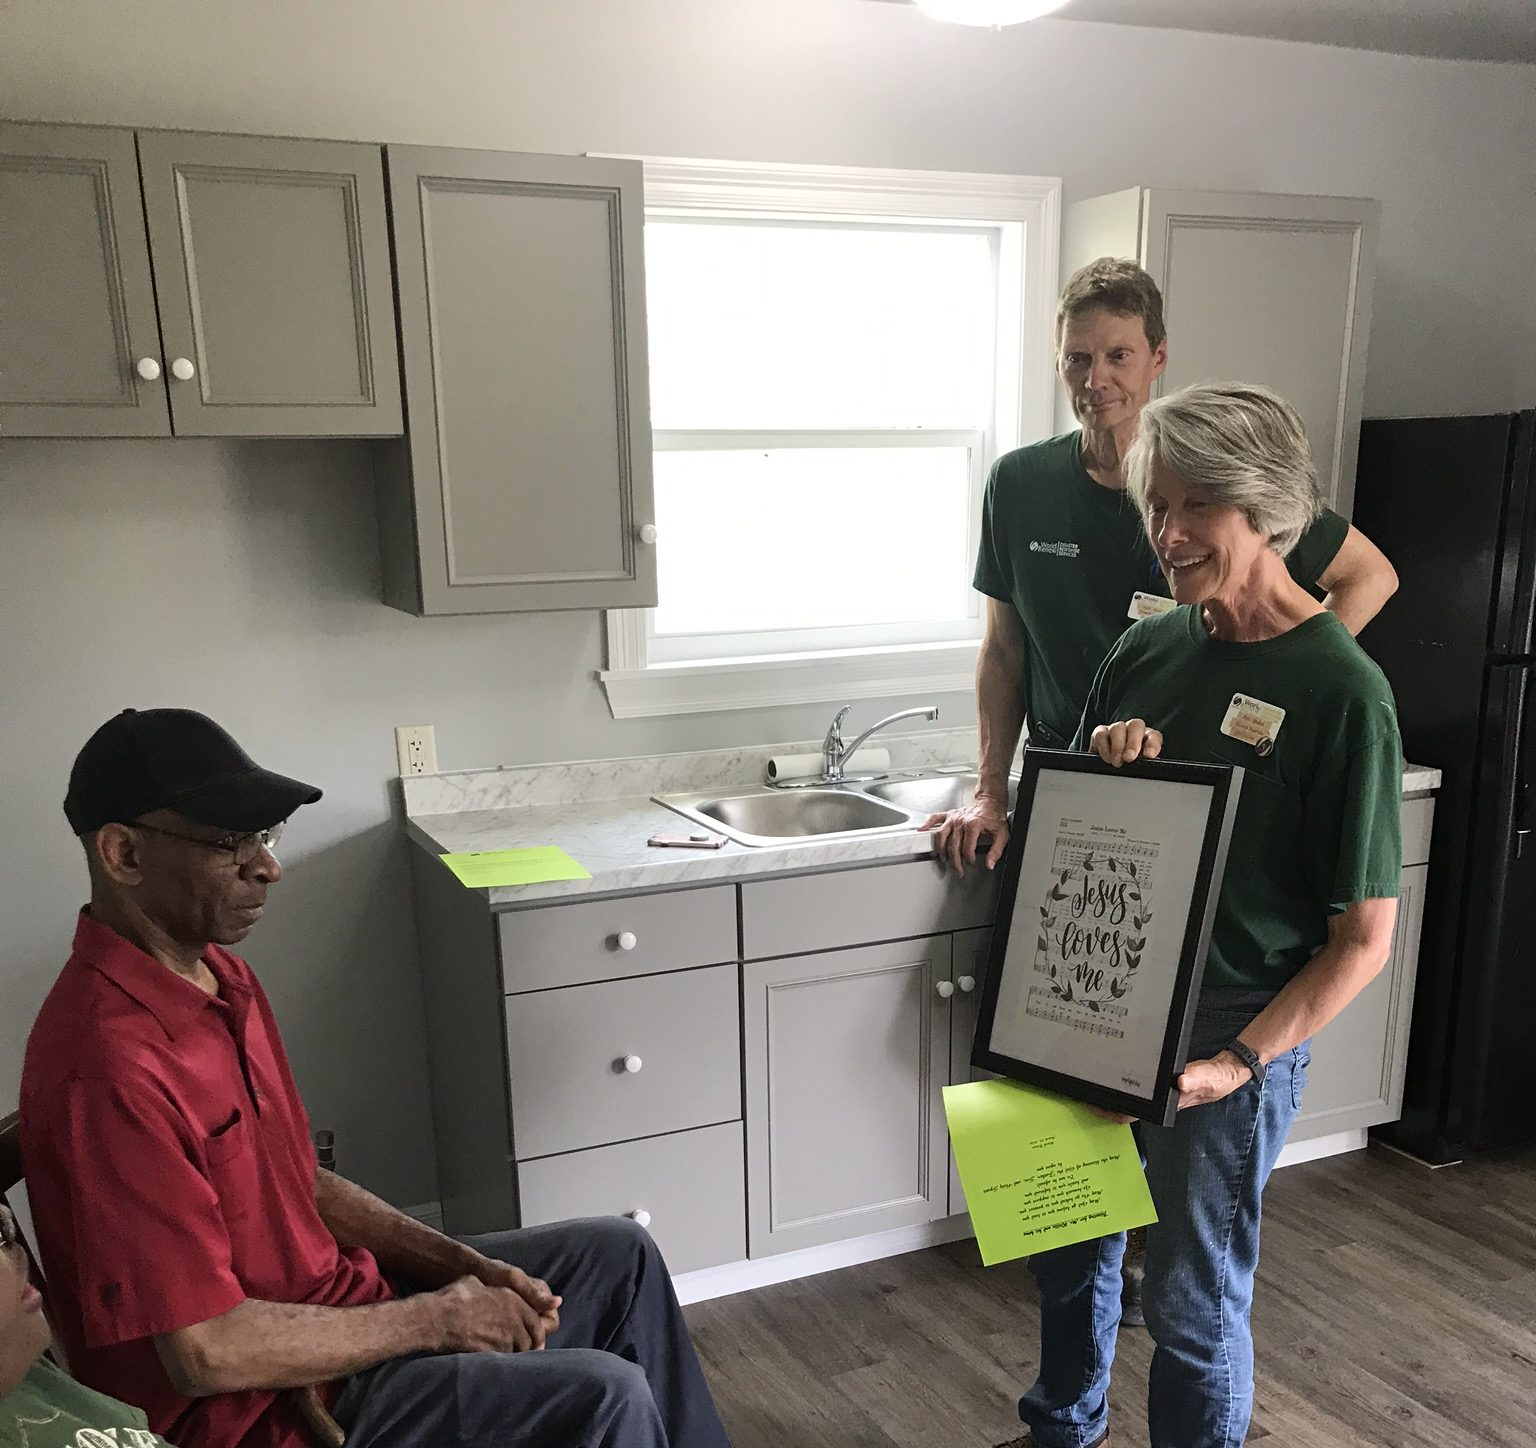 Mr Willie presented with a wall hanging for his kitchen